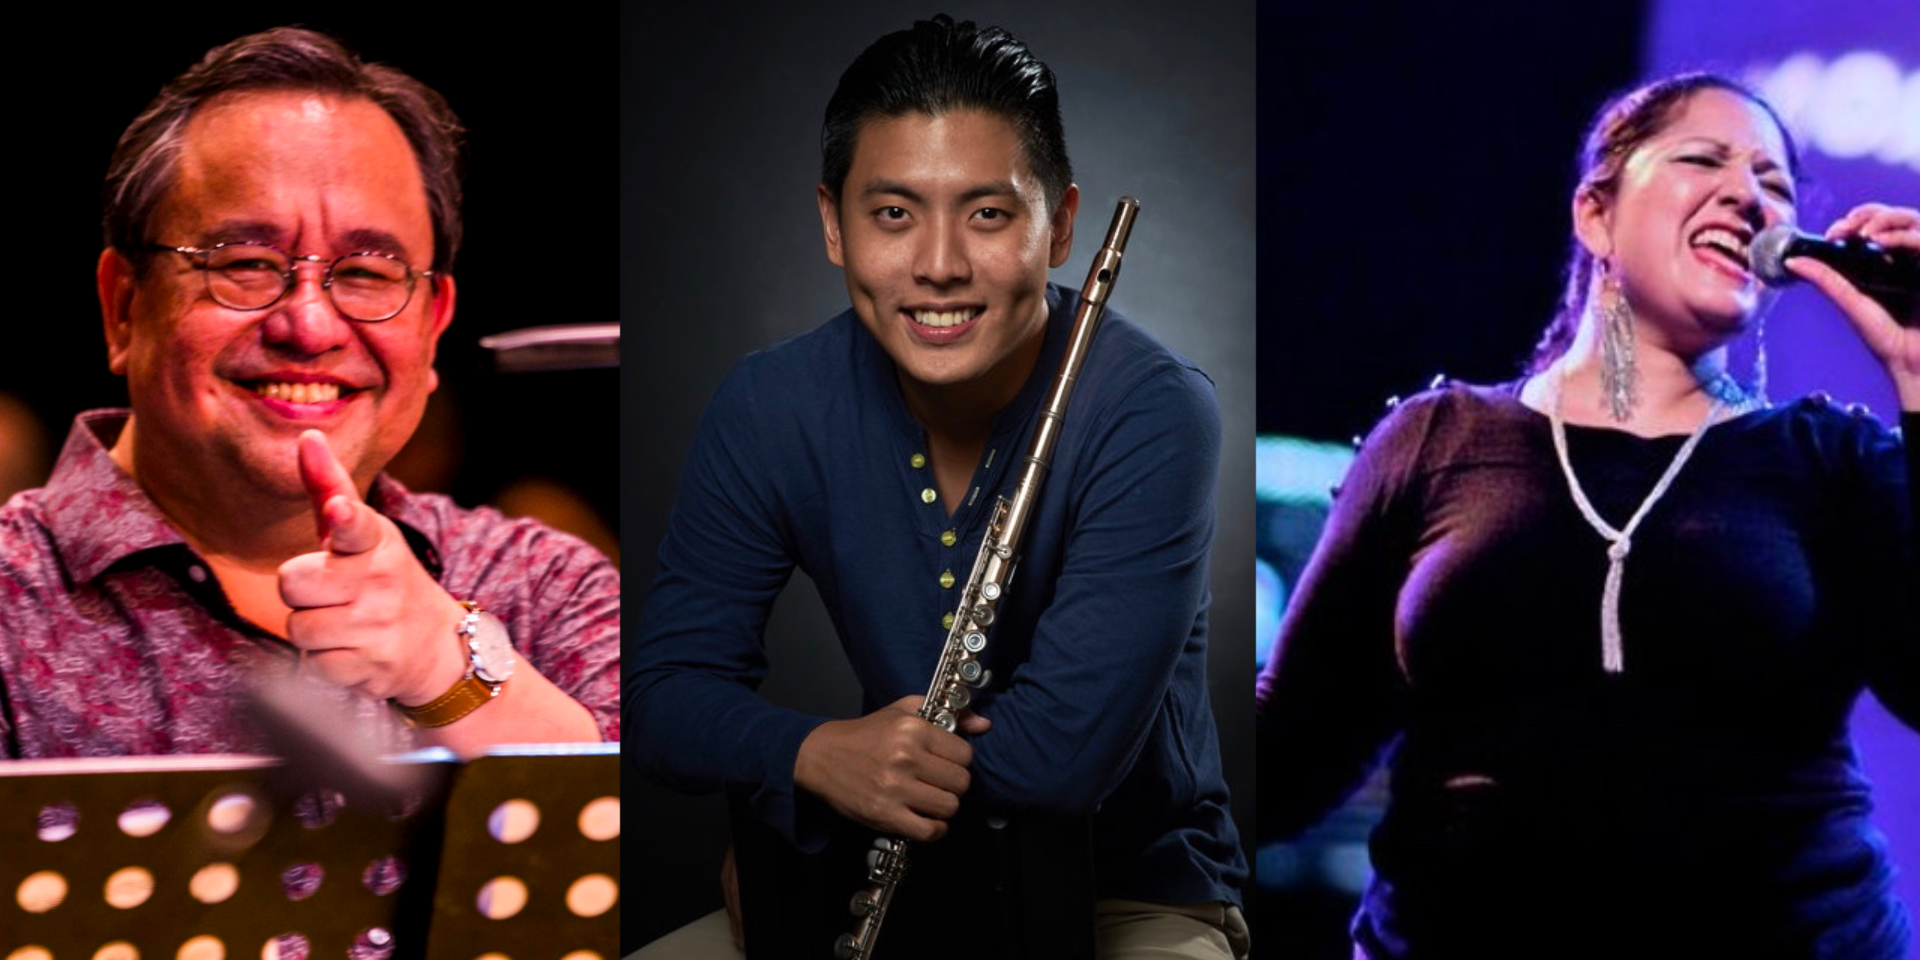 Celebrate International Jazz Day at home tonight, with a livestream concert by Jazz Association (Singapore)